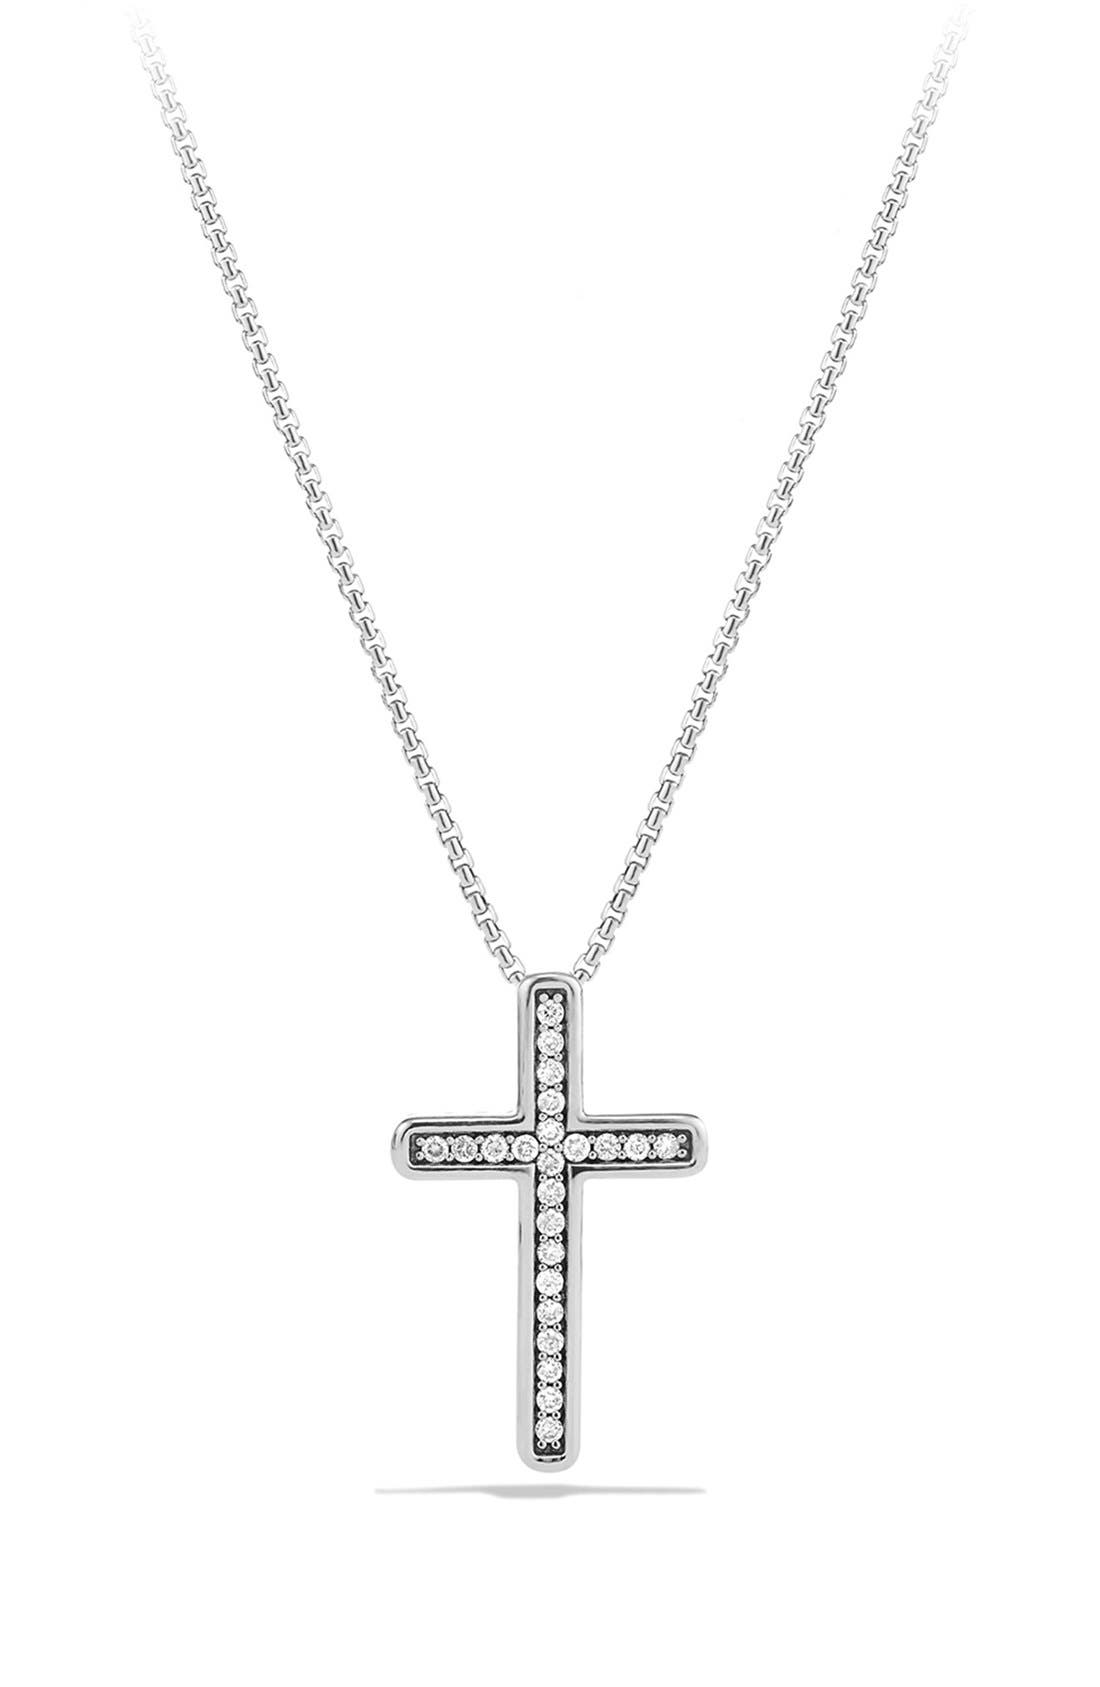 Main Image - David Yurman 'Petite Pavé' Cross Necklace with Diamonds